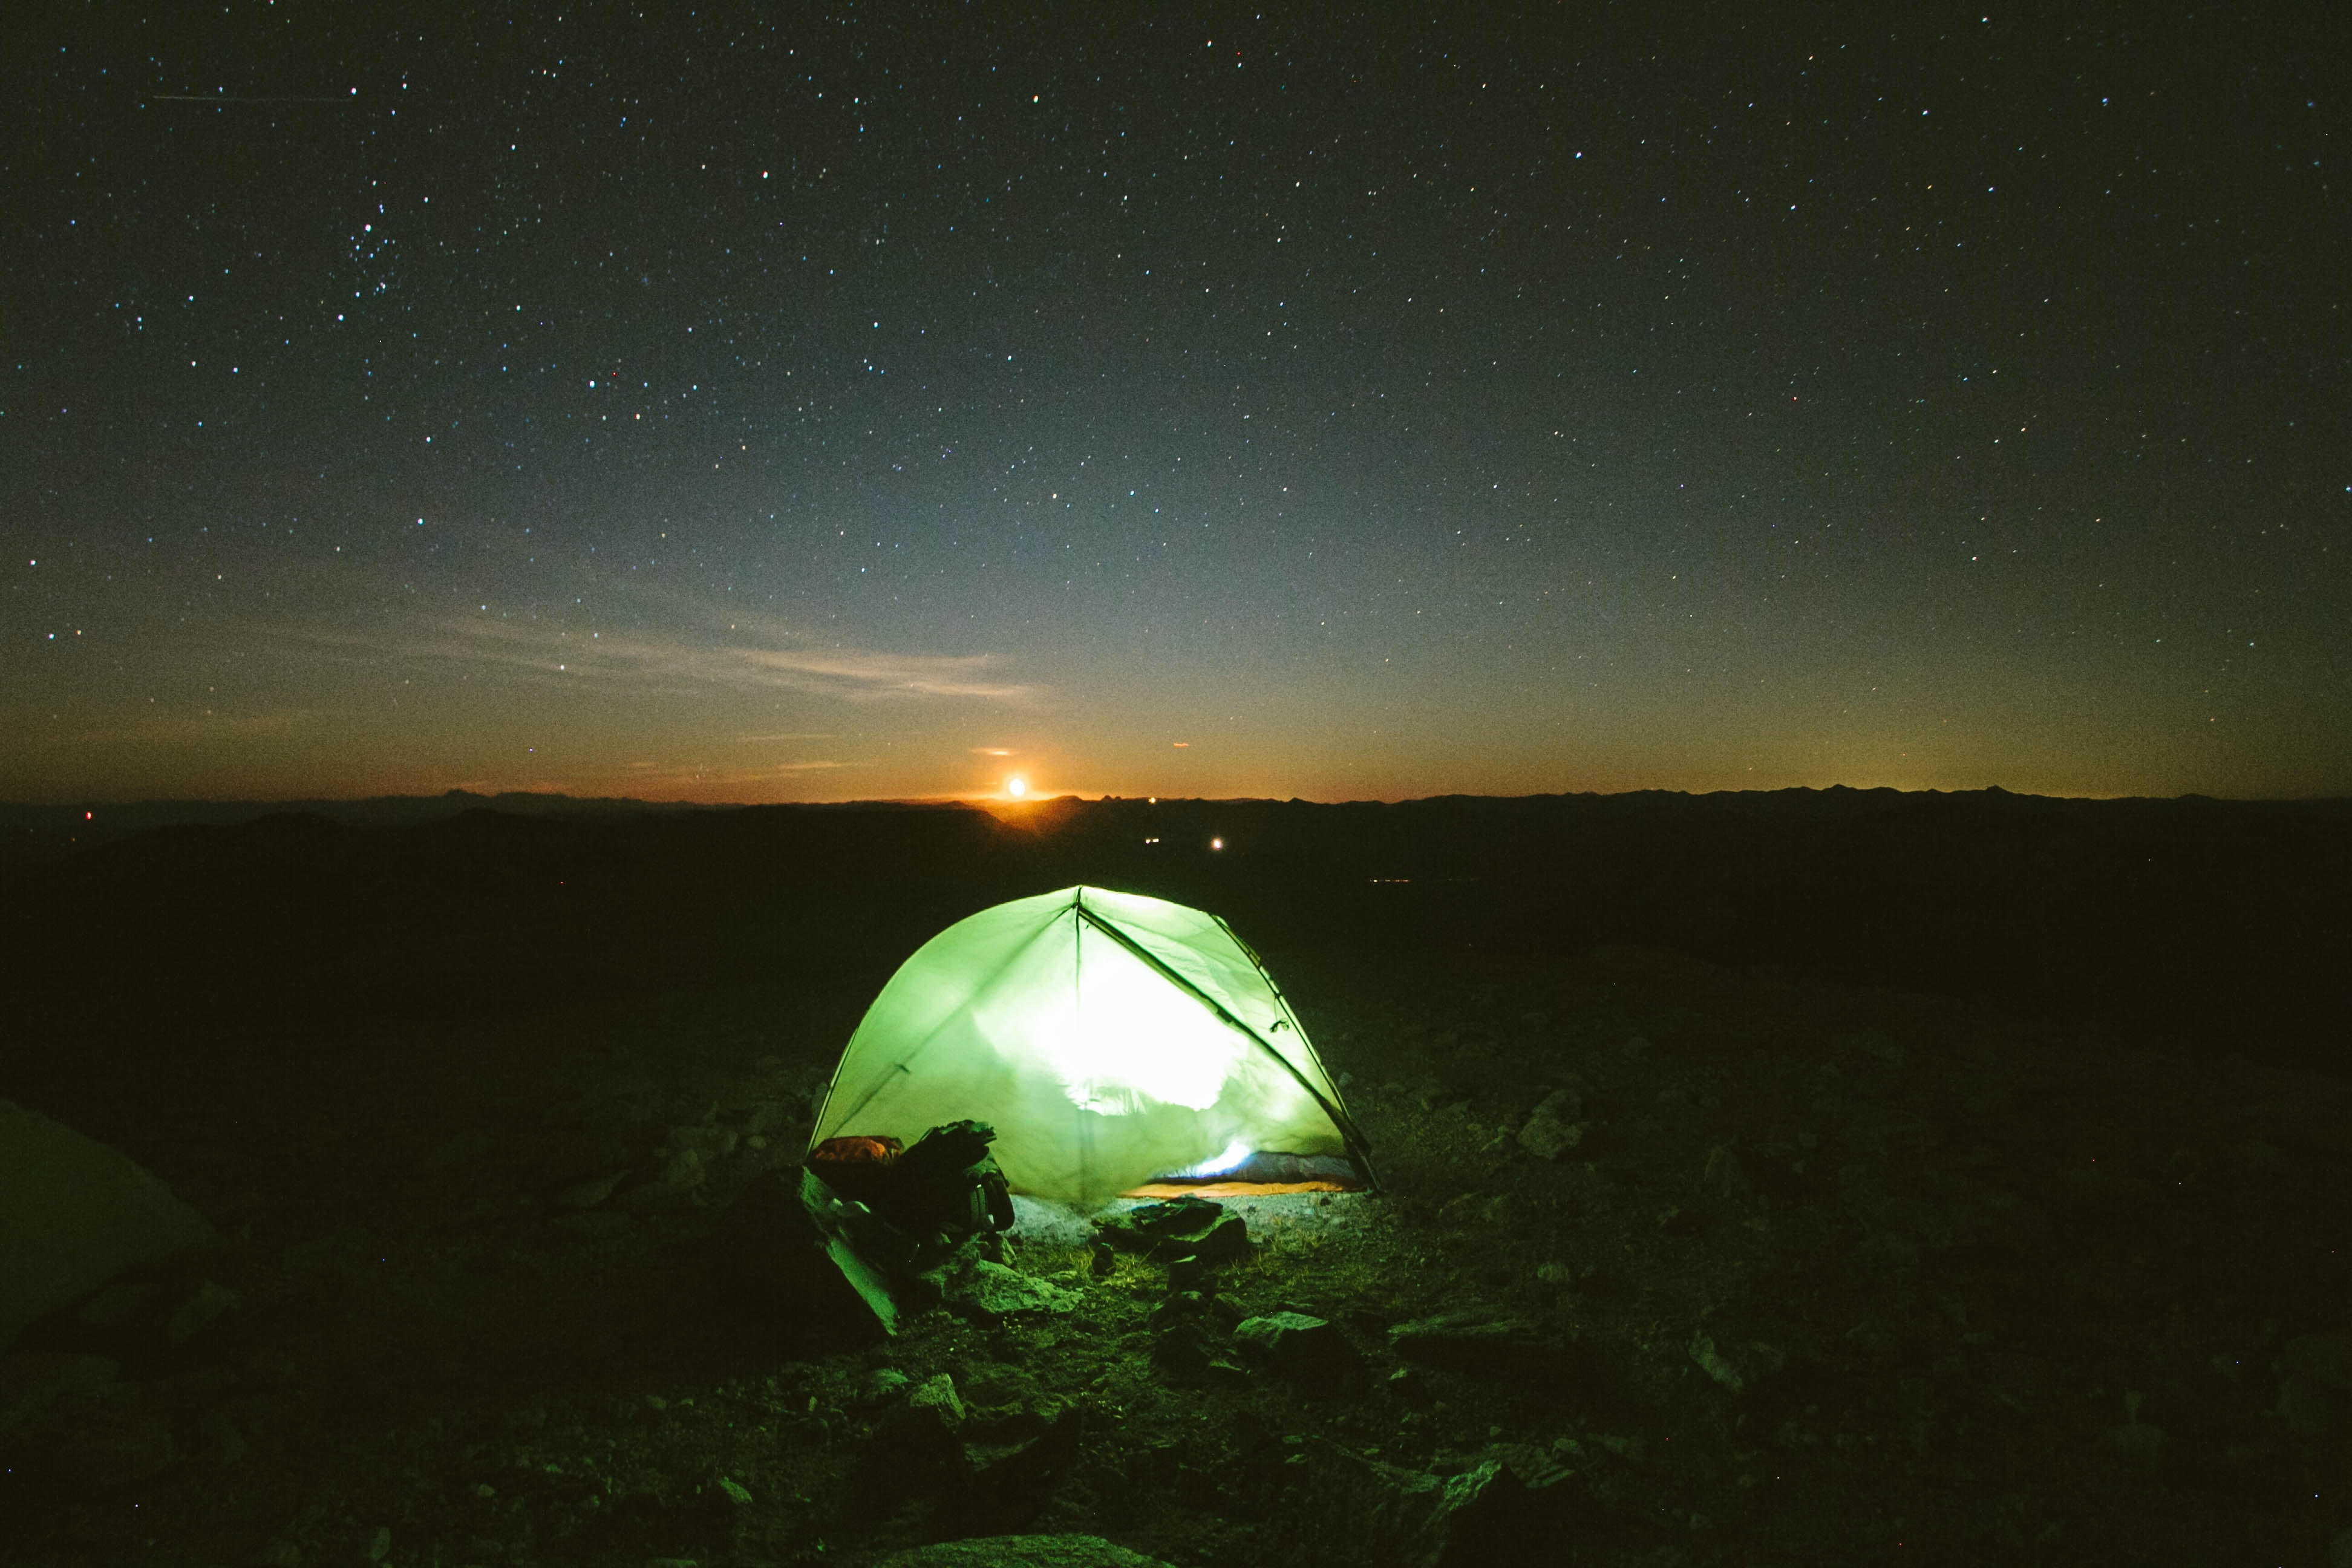 A lighted tent under the night sky with the sun on the horizon.